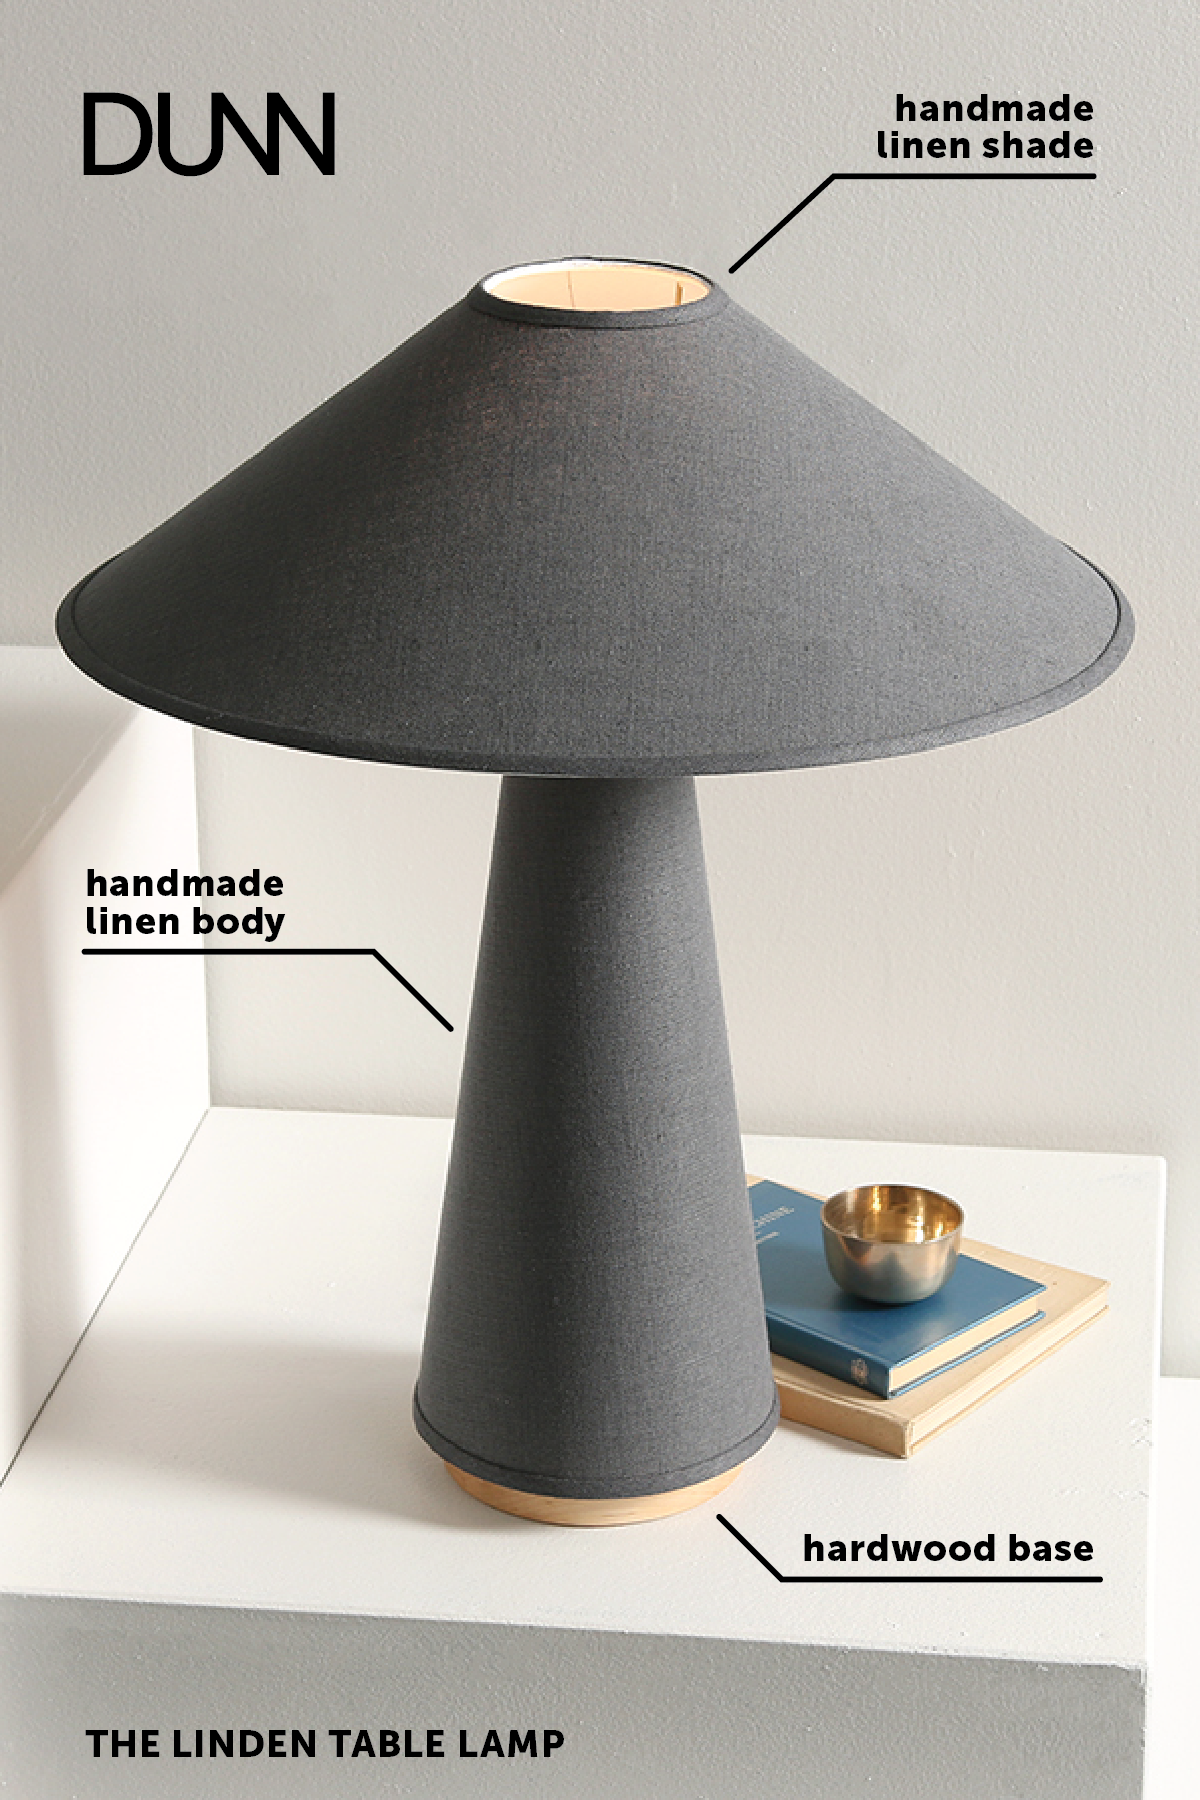 Linden Table Lamp Lamp Contemporary Table Lamps Table Lamp